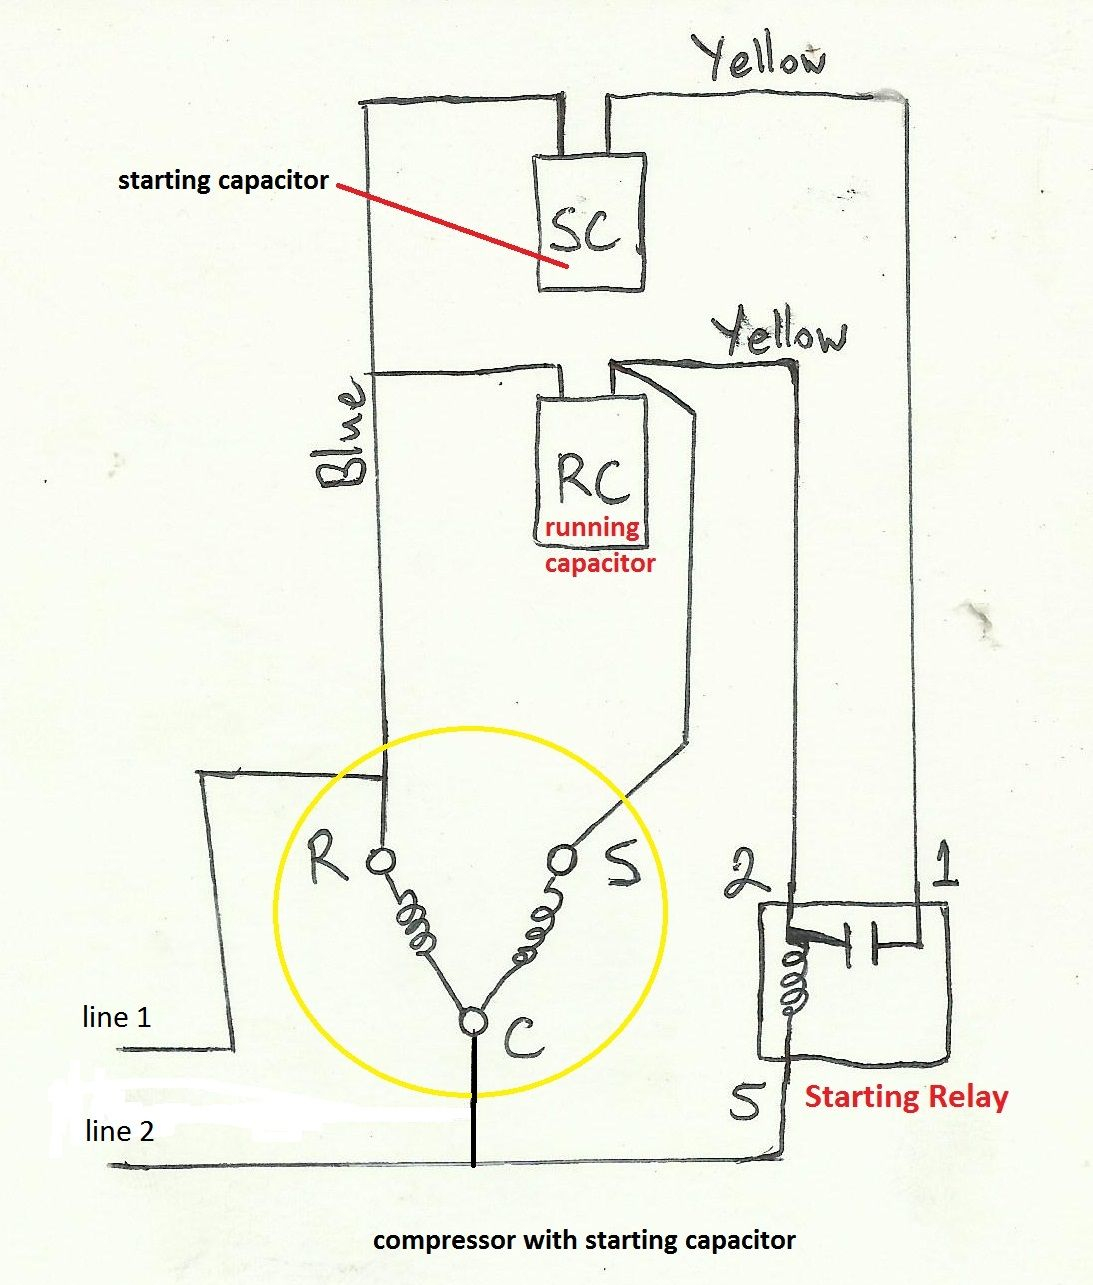 ac compressor wiring diagram Collection-Air pressor Capacitor Wiring Diagram Before you call a AC repair man visit my blog for some tips on how to save thousands in ac repairs 4-g